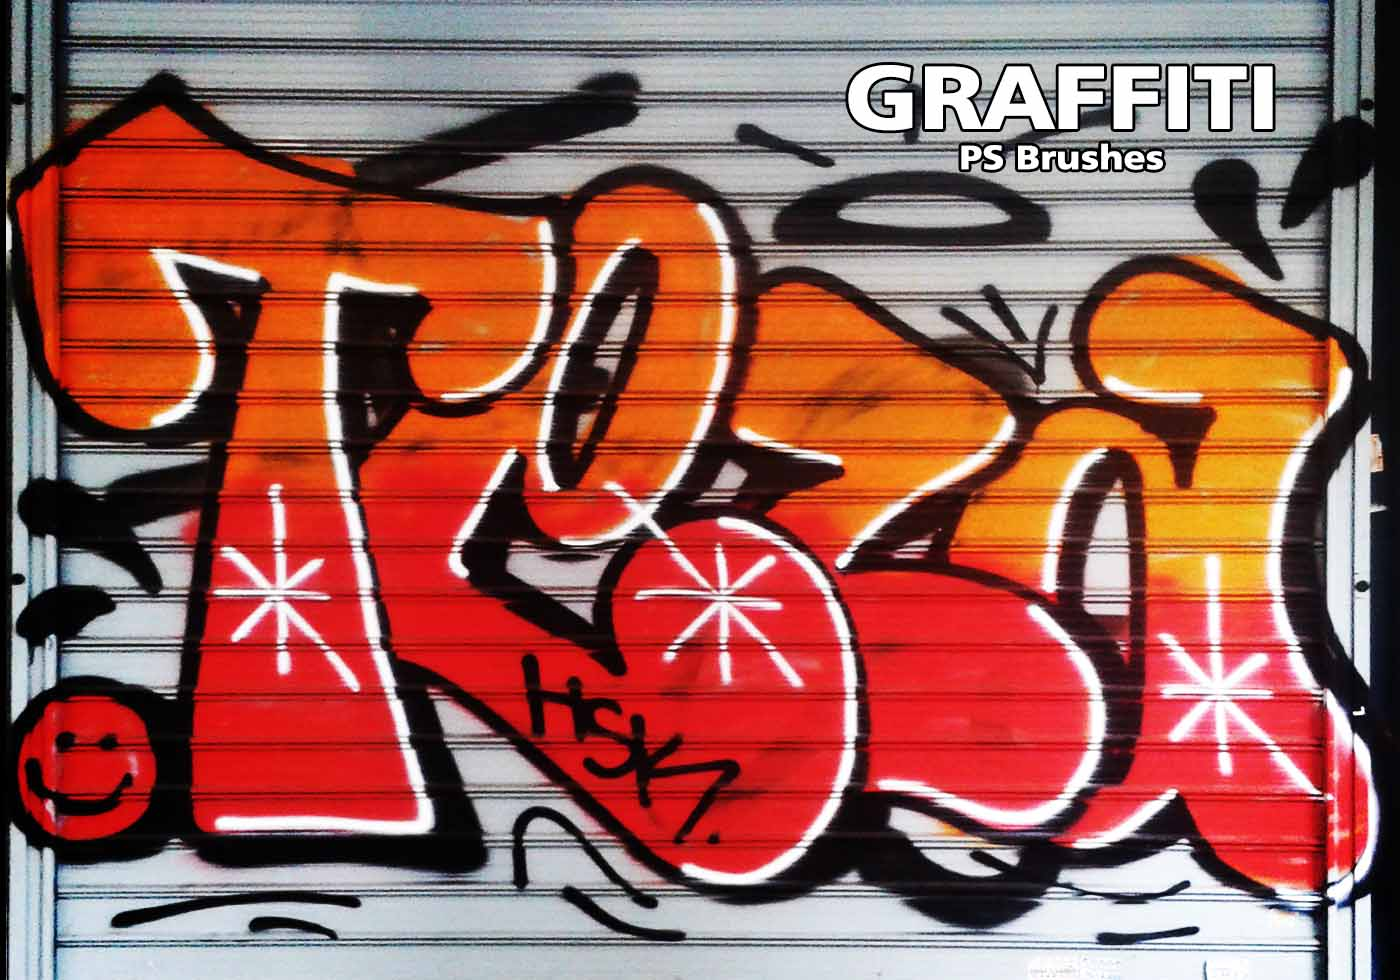 Download 20 Graffiti PS Brushes abr. Vol.8 - Free Photoshop Brushes ...